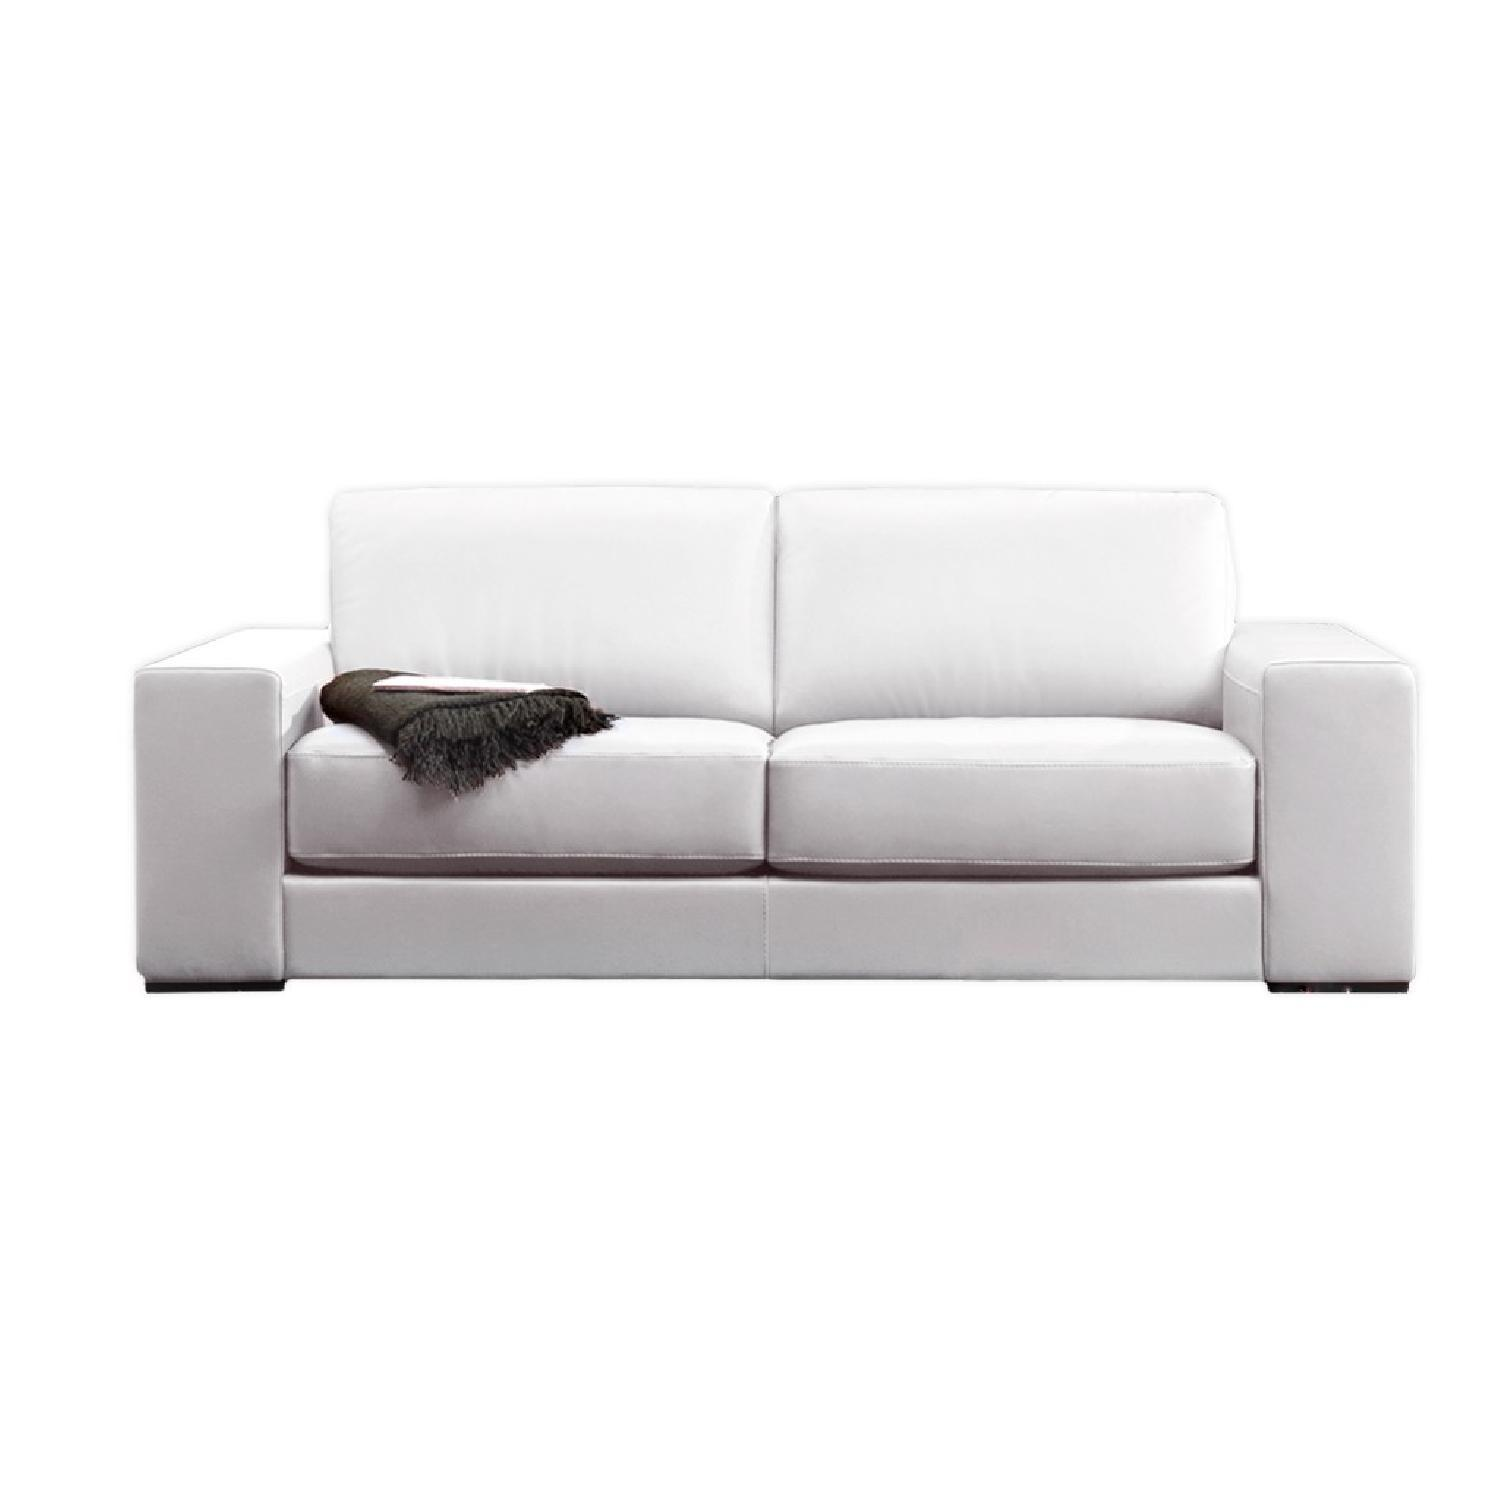 Natuzzi Clark White Leather Sofa - image-8